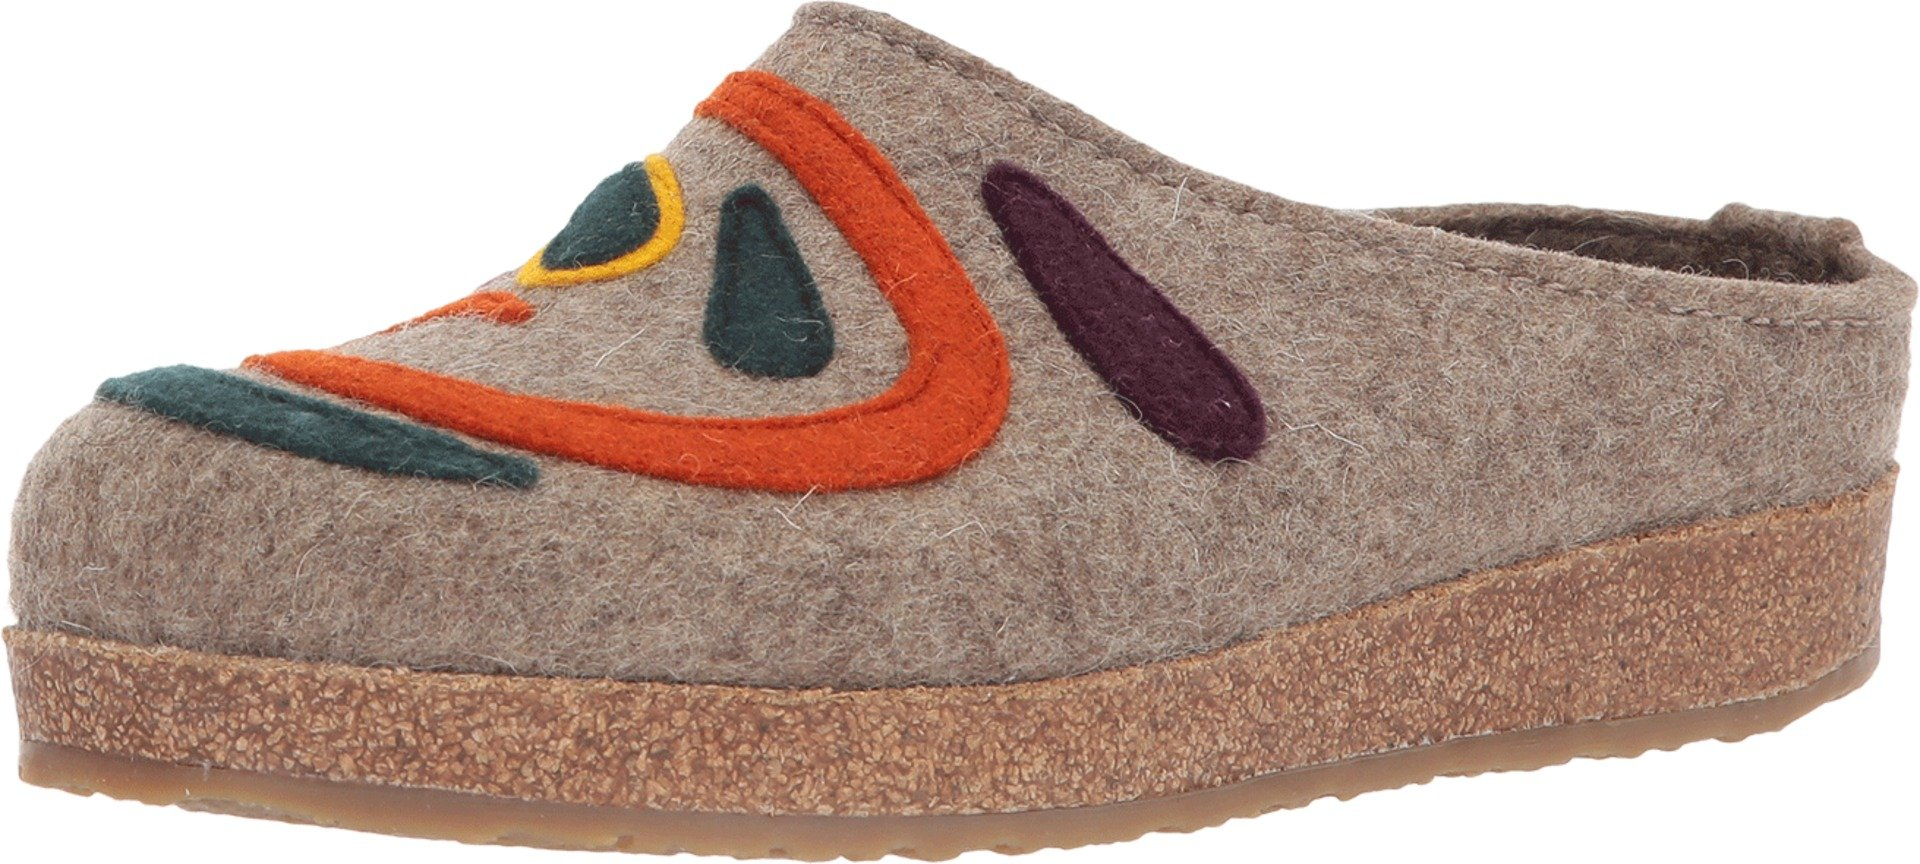 Haflinger Harmony Earth Womens Slippers Size 39M